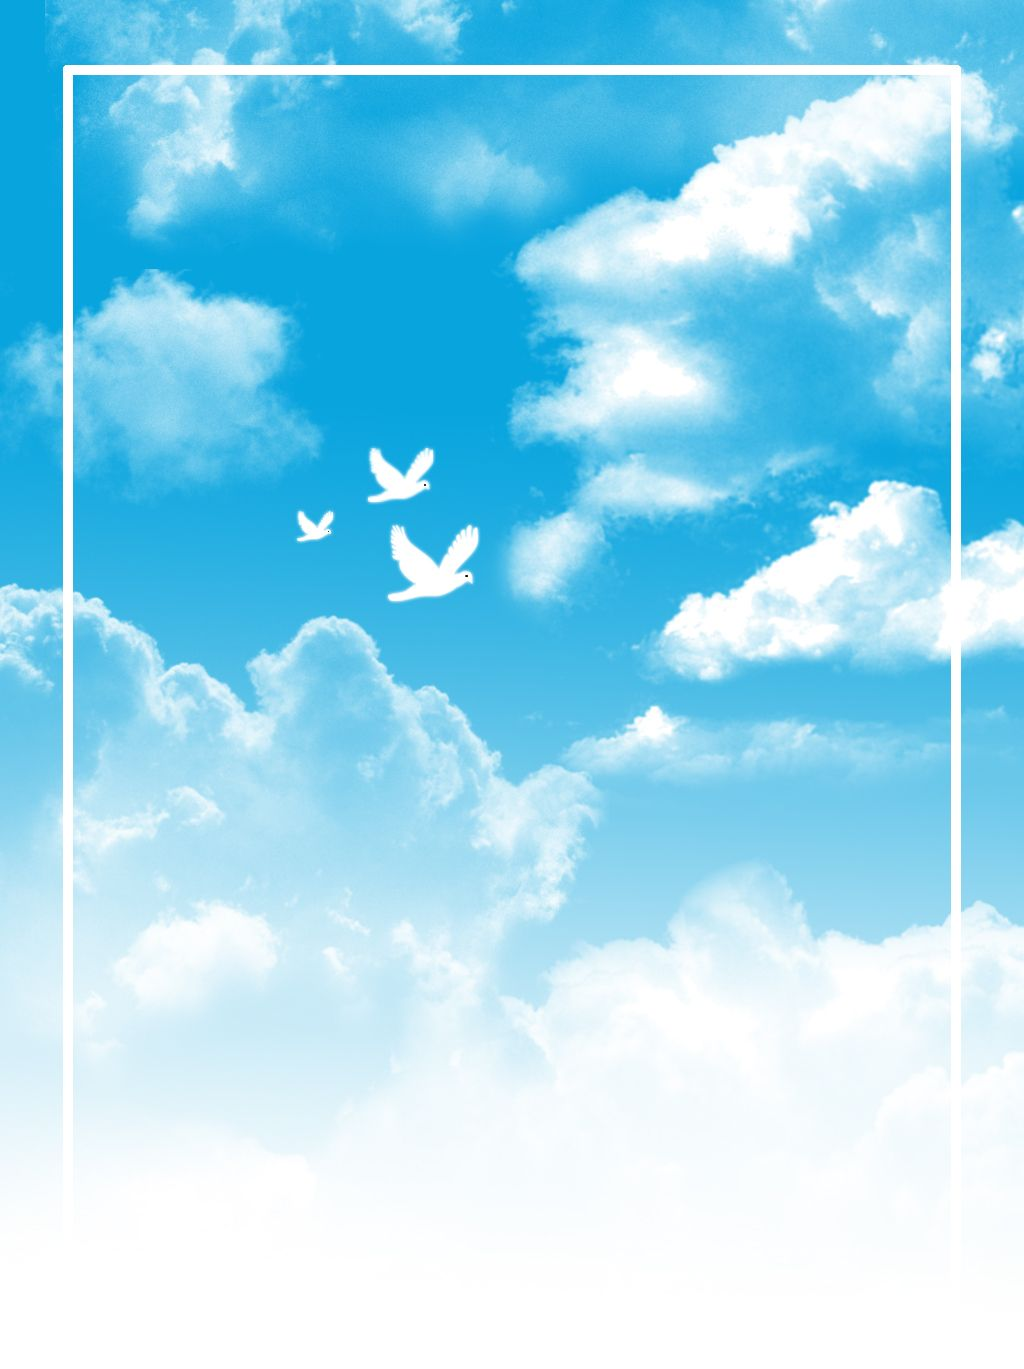 Simple Blue Sky And White Clouds Background Illustration In 2020 Blue Sky Background Green Background Video Clouds